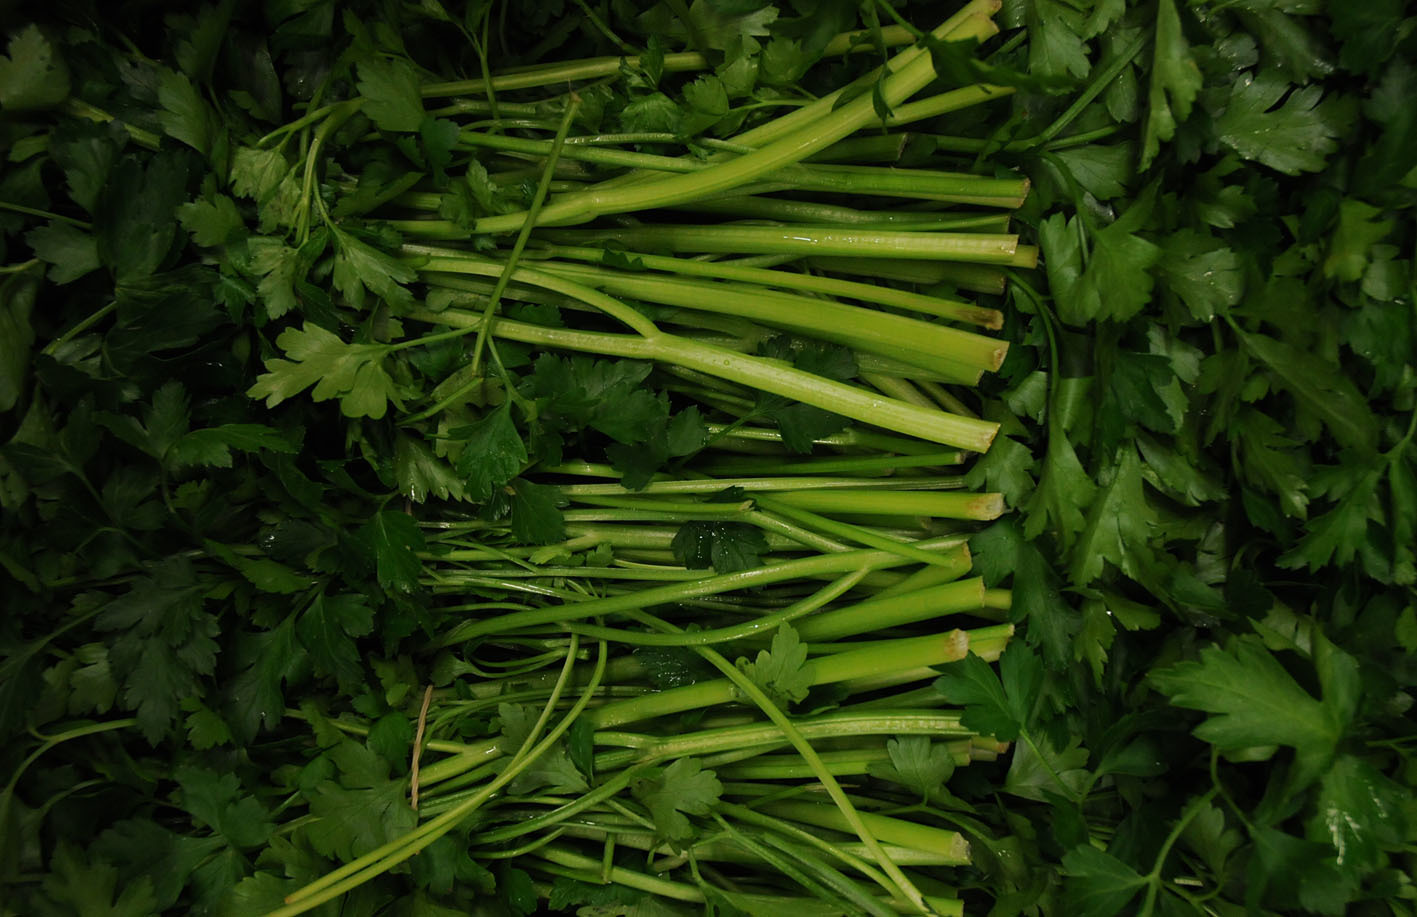 flat-leaf-parsley.jpg?mtime=20170922144309#asset:11545